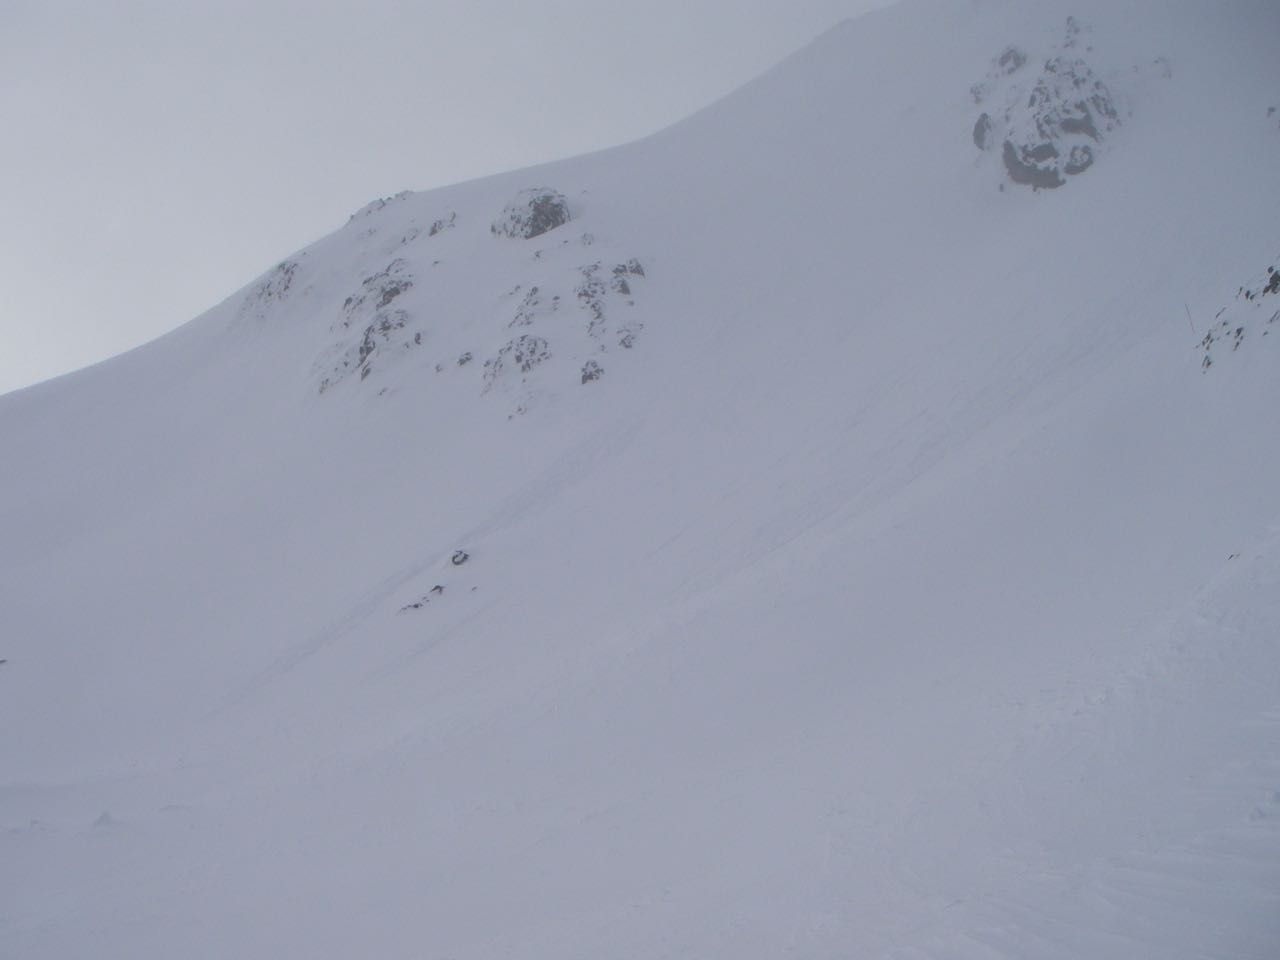 A sluff with the cornice debris which had probably started it.